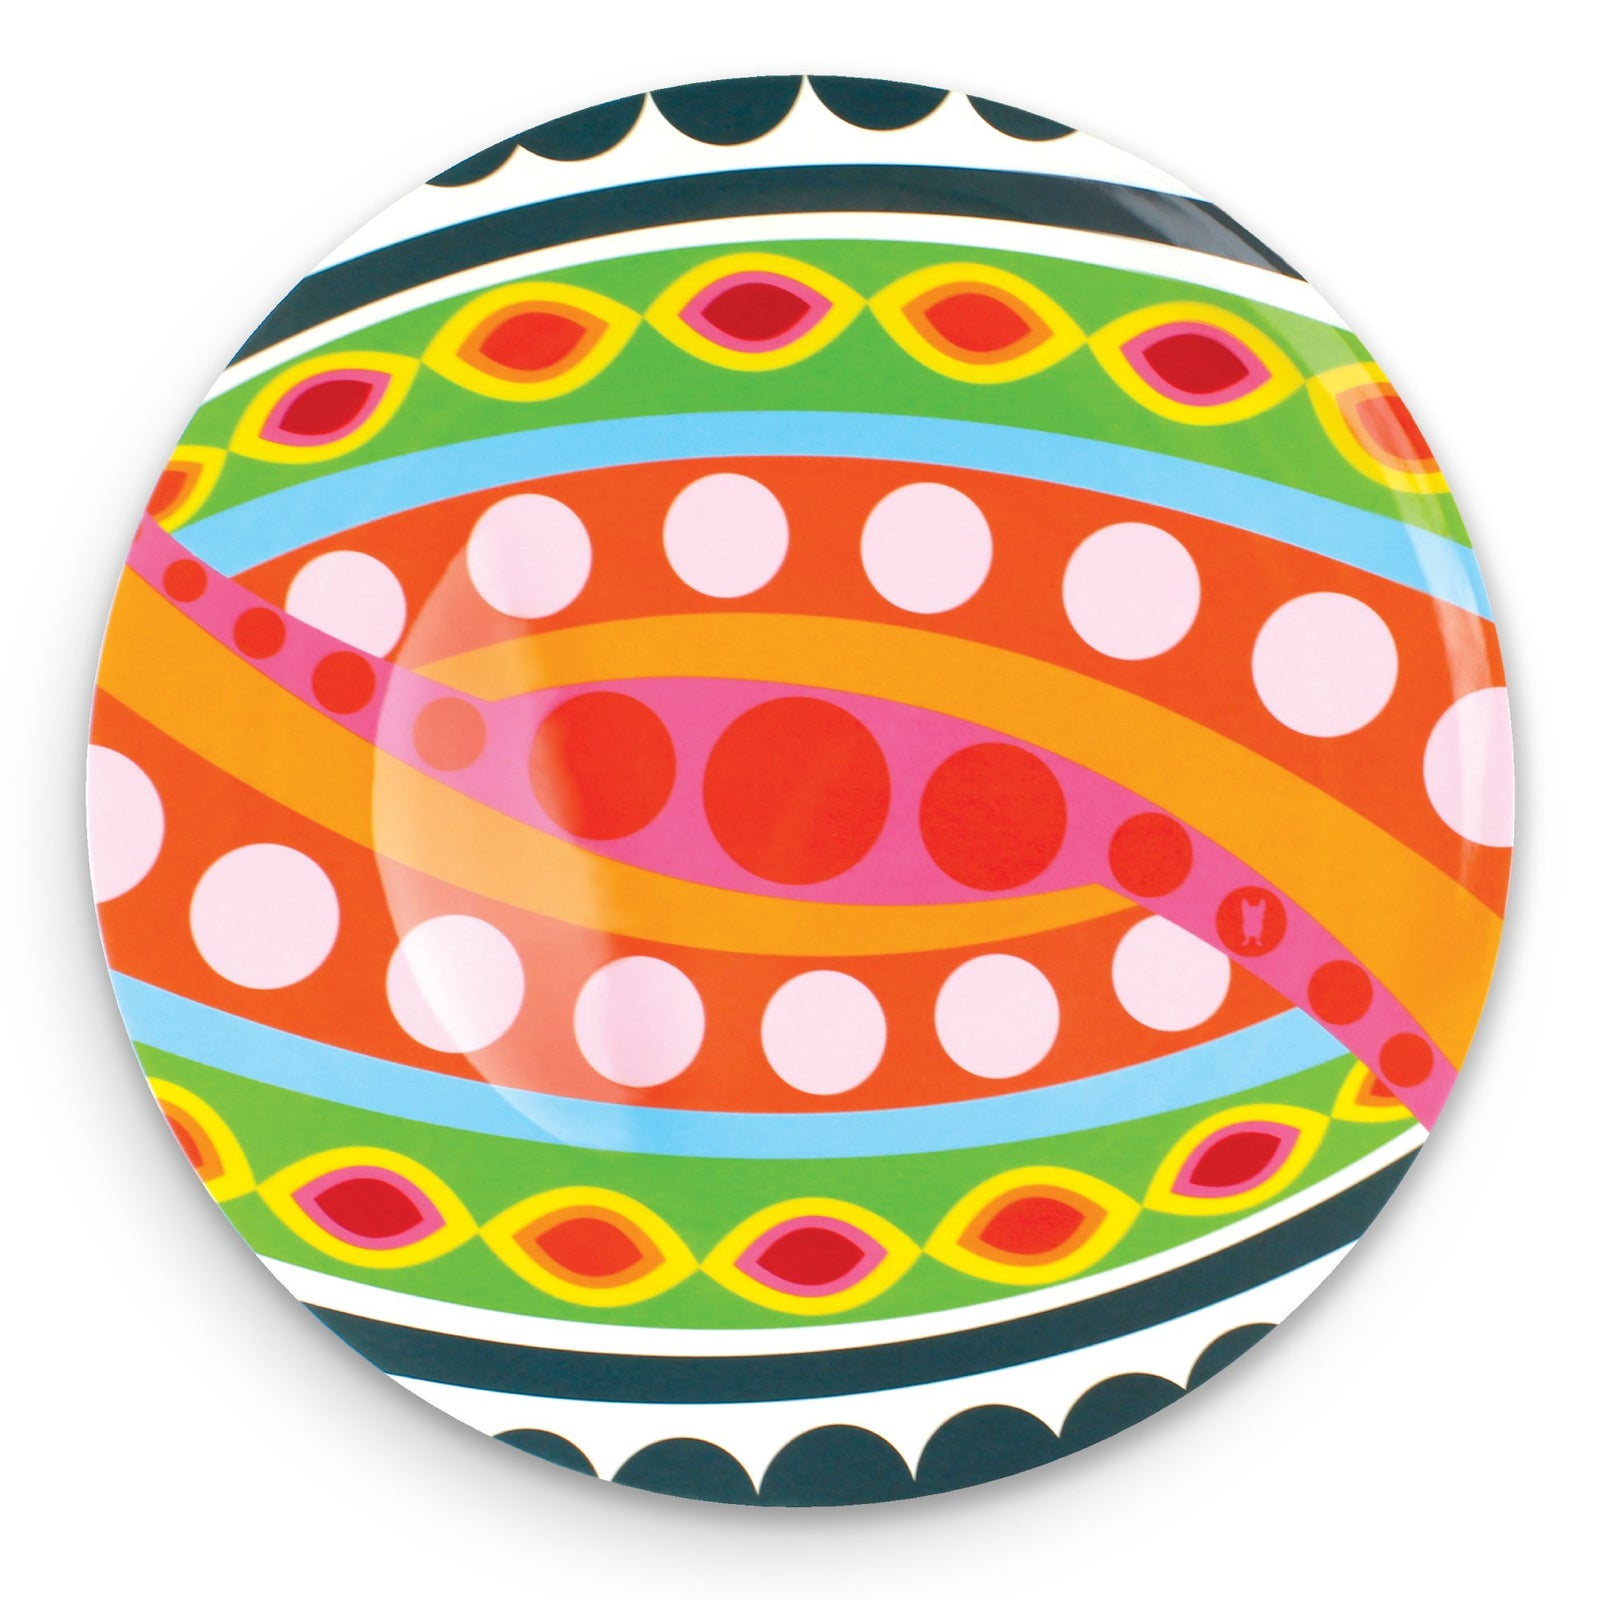 French Bull - Melamine Serving Platter - 15-1/2-Inch Round Serving Tray